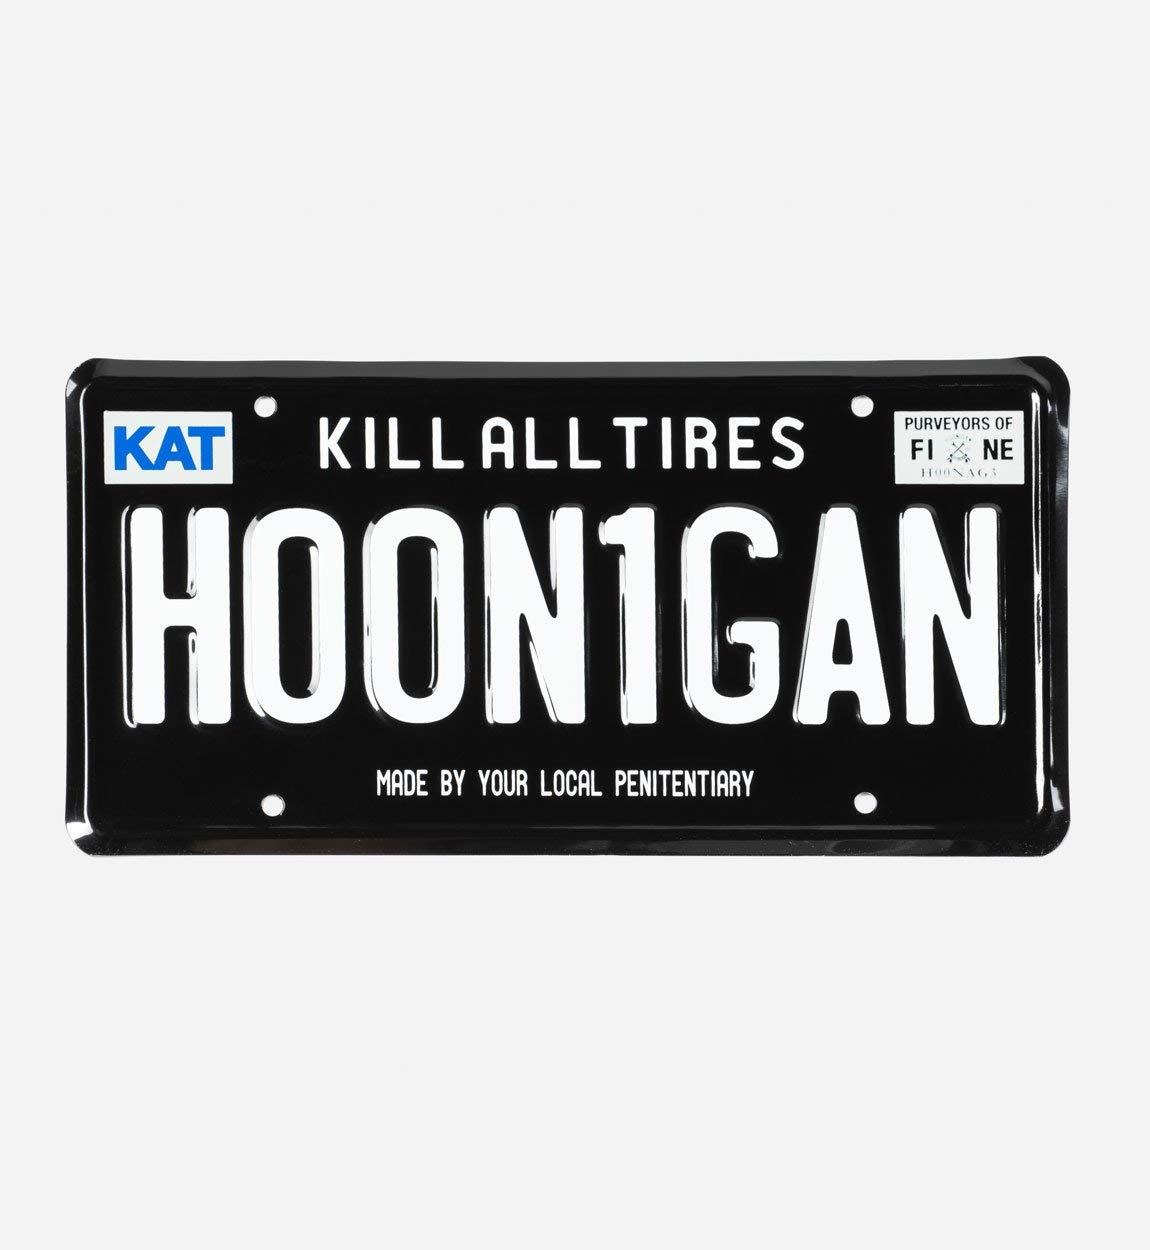 Hoonigan License Plate Then Buy This Plate.